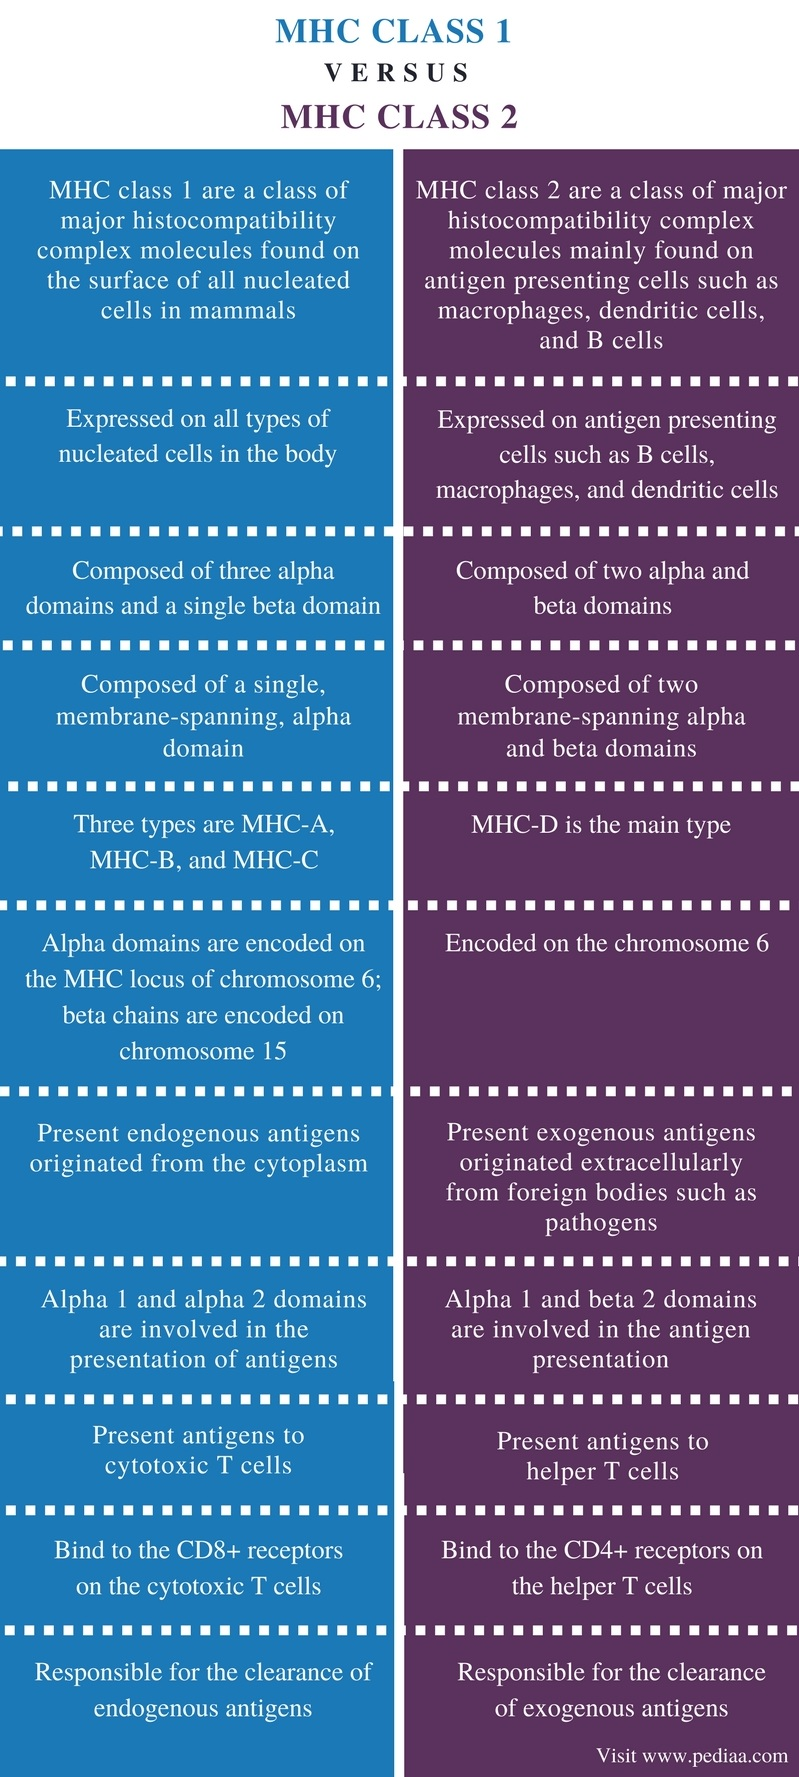 Difference Between MHC Class 1 and 2 | Definition, Structure